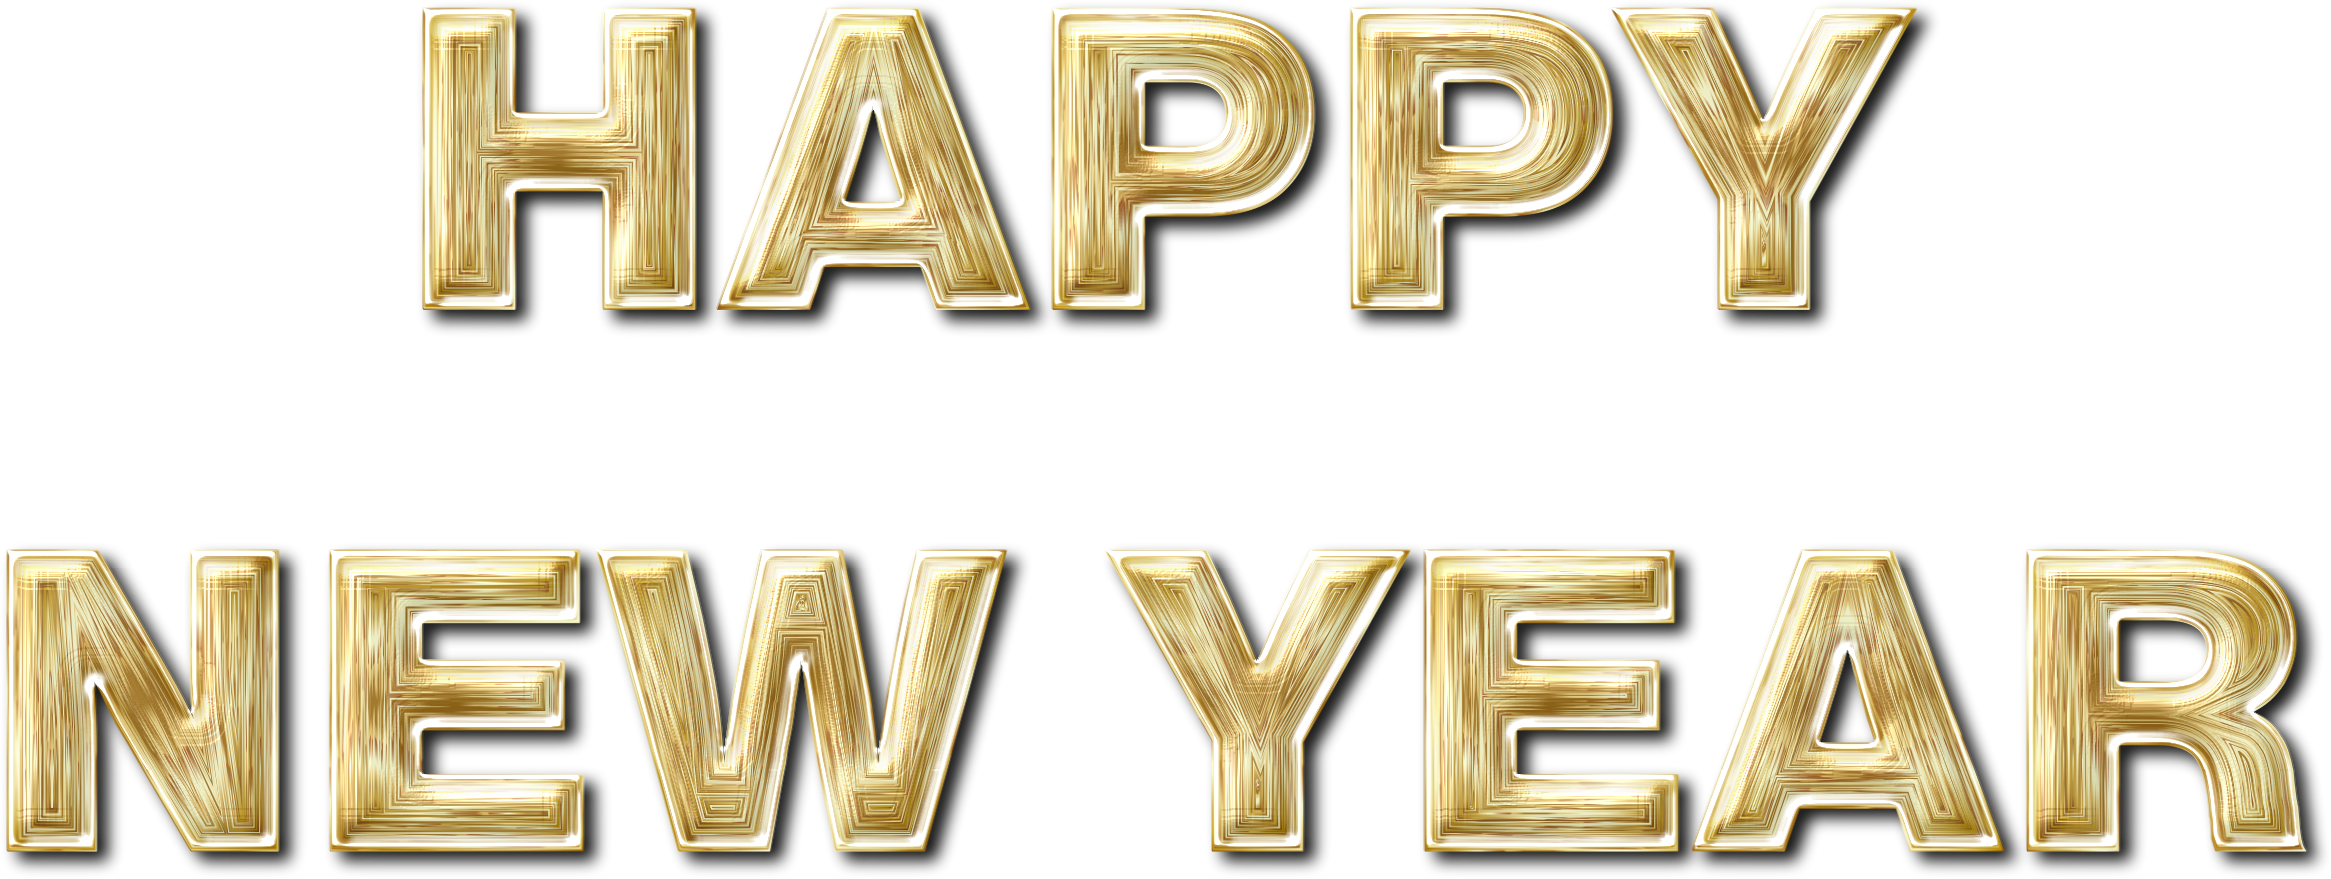 Clipart enhanced with drop. Happy new year gold png clip art freeuse